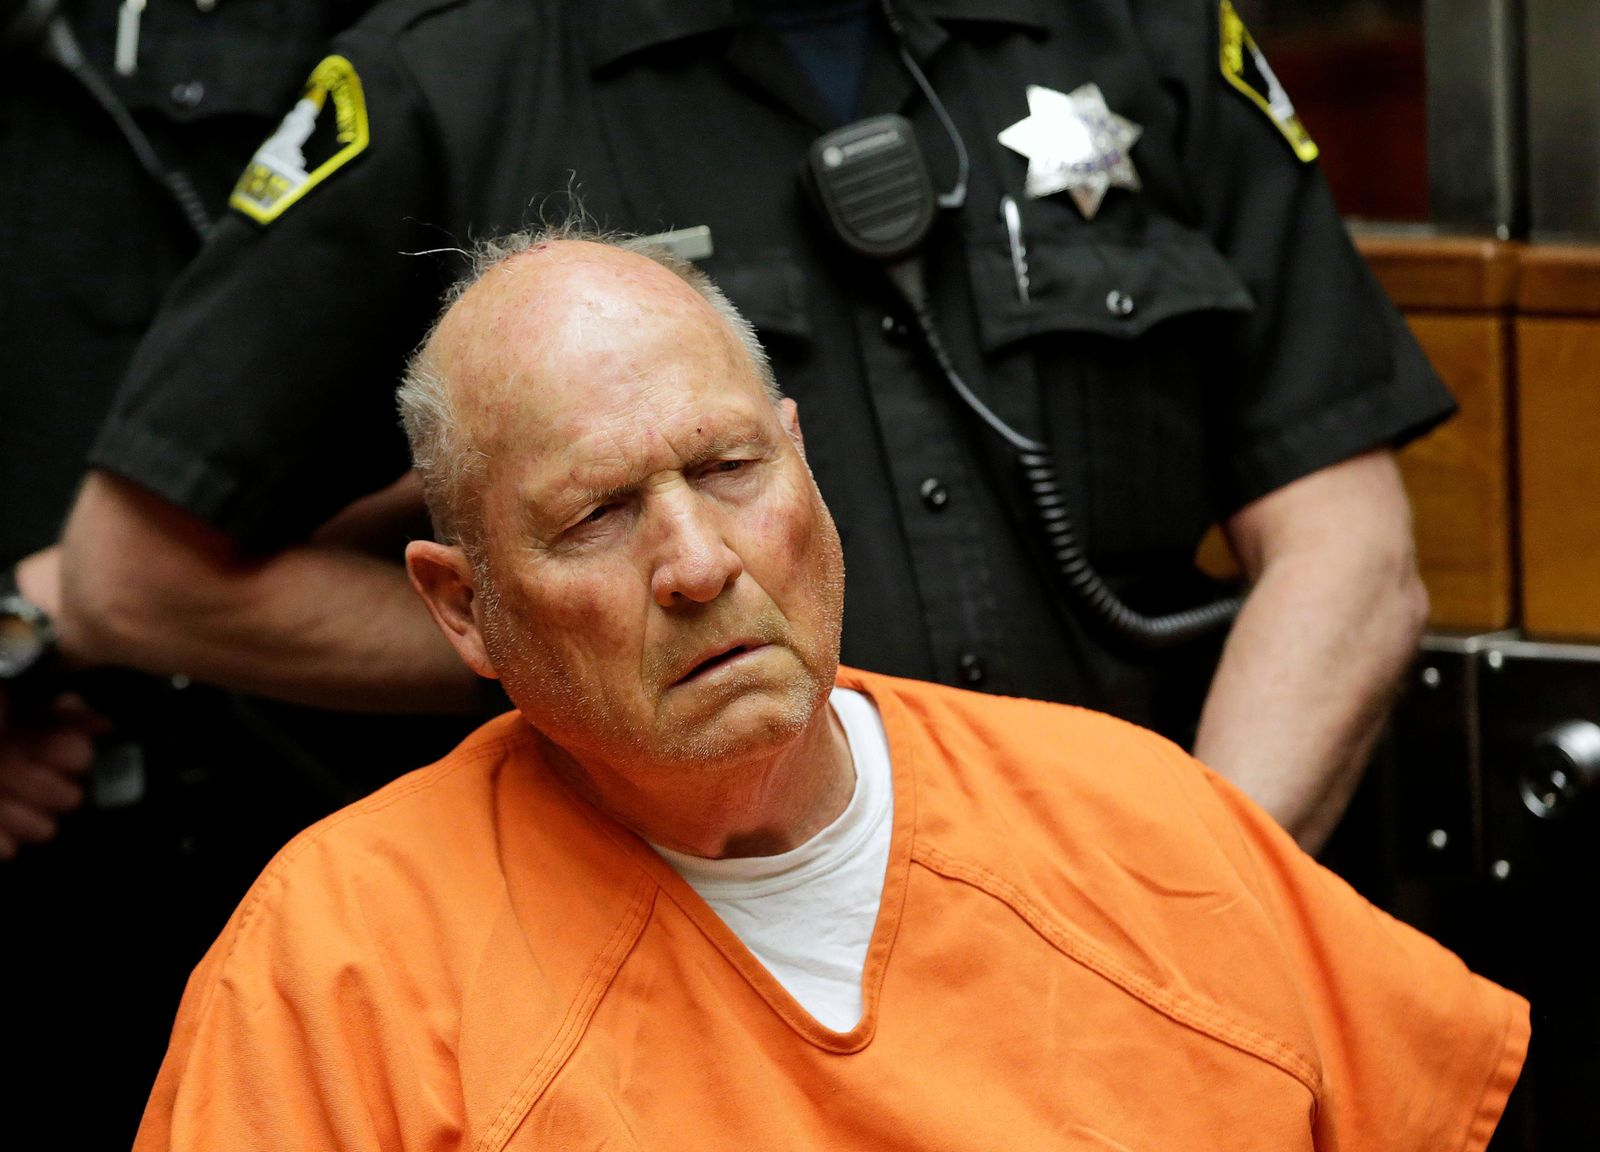 FILE - In this April 27, 2018 file photo Joseph James DeAngelo, 72, who authorities suspect is the so-called Golden State Killer responsible for at least a dozen murders and 50 rapes in the 1970s and 80s, is arraigned in Sacramento County Superior Court in Sacramento, Calif. (AP Photo/Rich Pedroncelli, File)